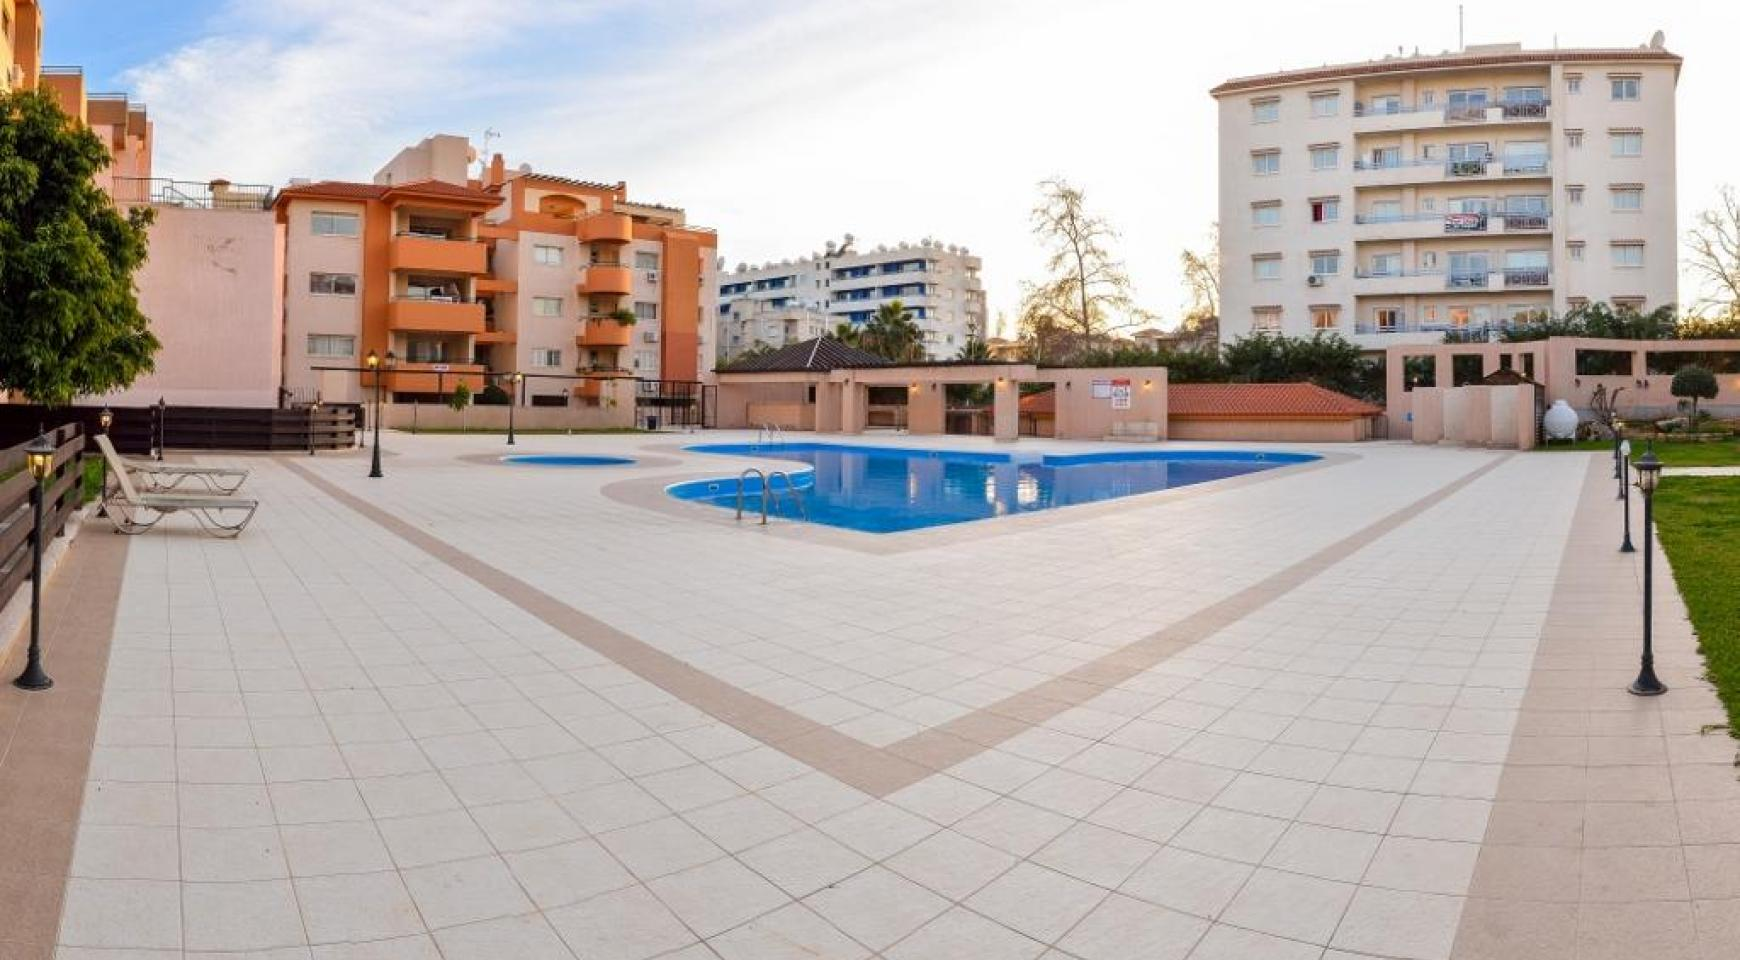 3 Bedroom Apartment in the Centre of the Tourist Area - 5